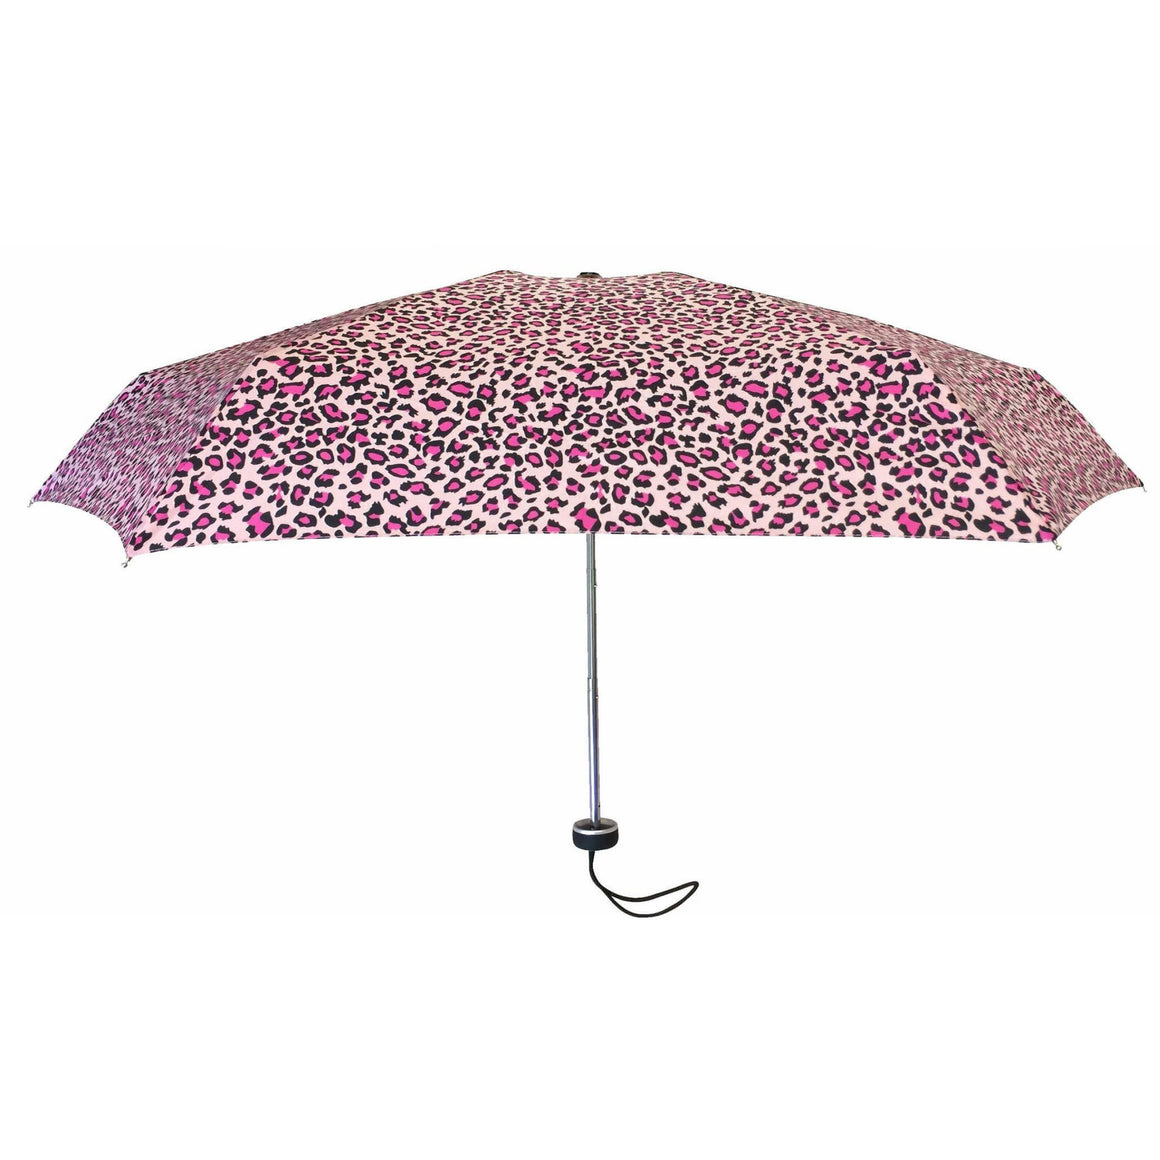 Wholesale Pastel Leopard Umbrellas